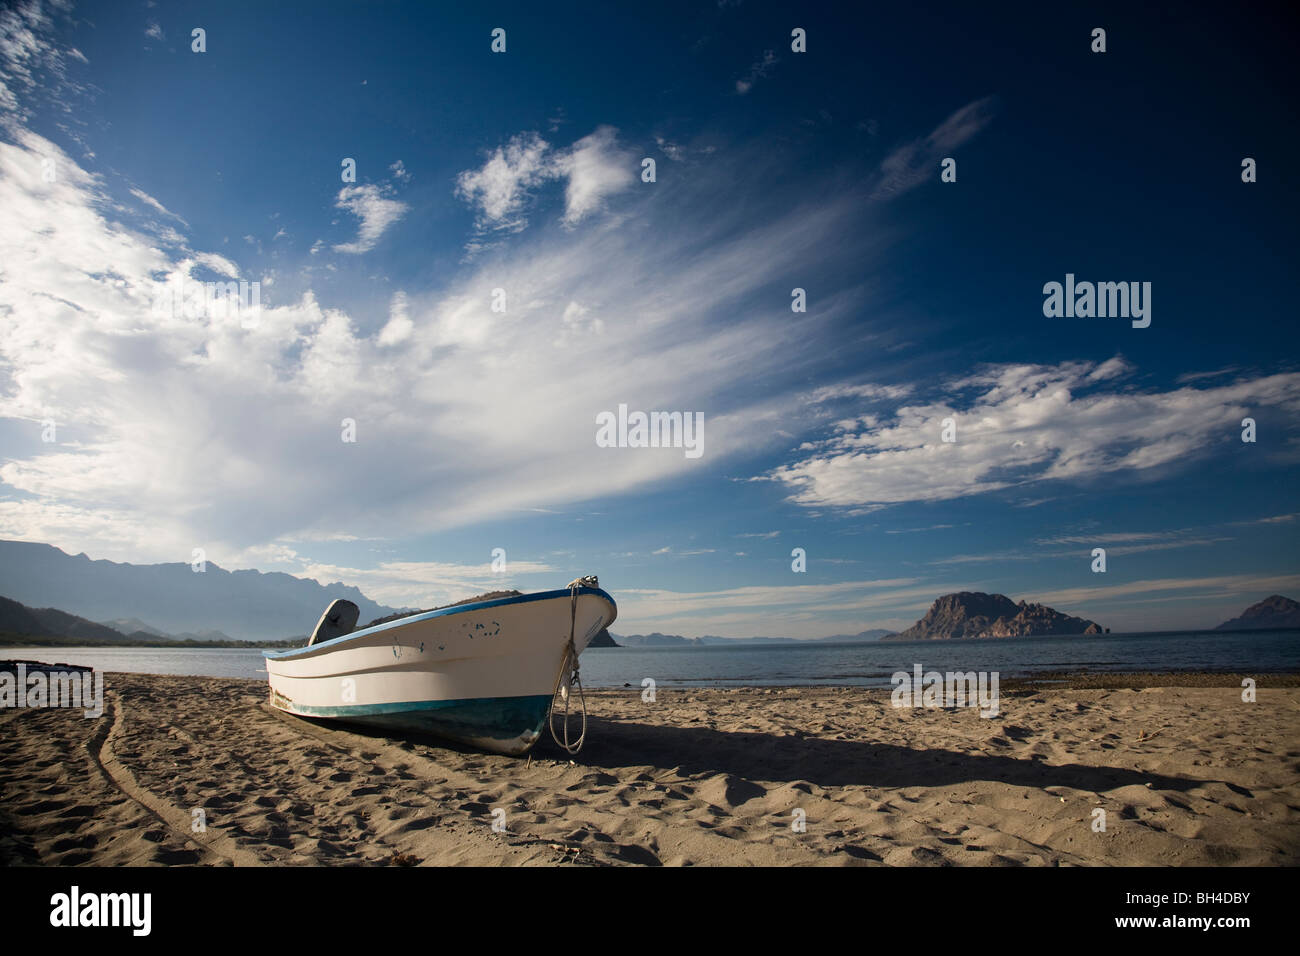 A boat sits on the sand on an empty beach beneath a partly cloudy sky in Loreto, Baja California Sur, Mexico. - Stock Image